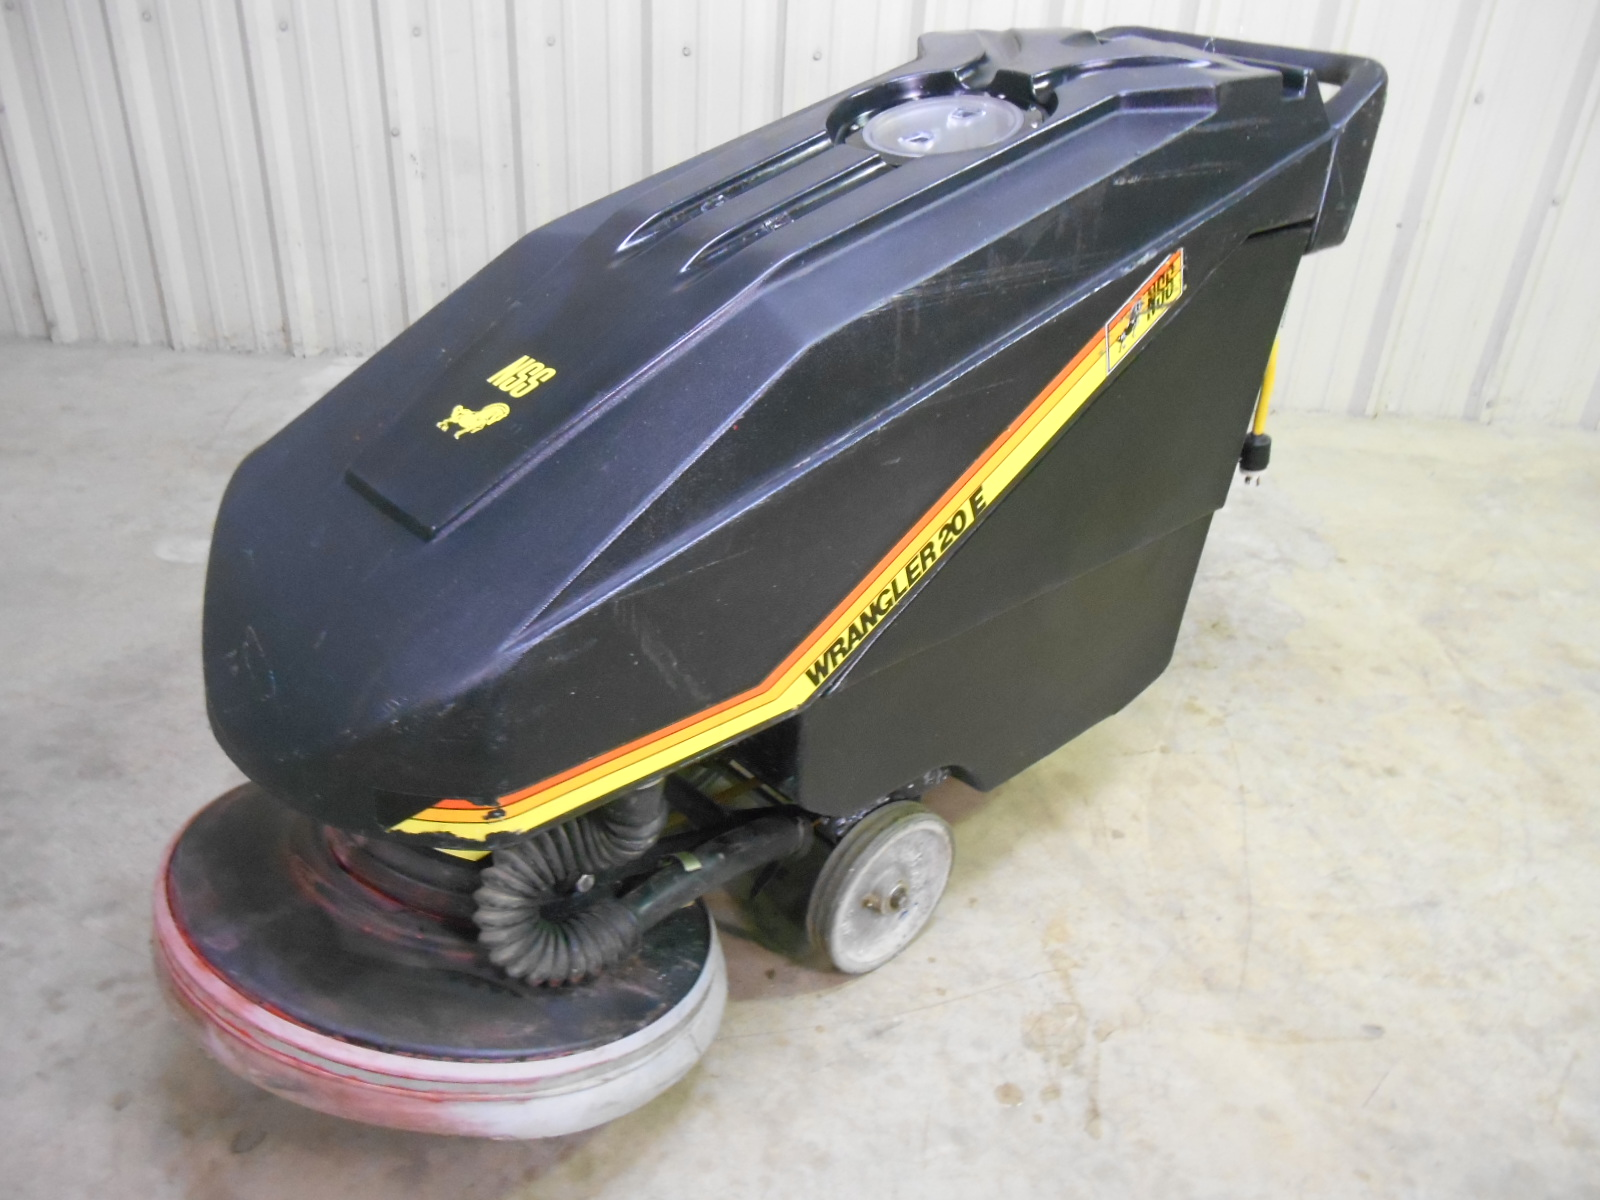 NSS Wrangler 20E Floor Scrubber Used, Tested Good